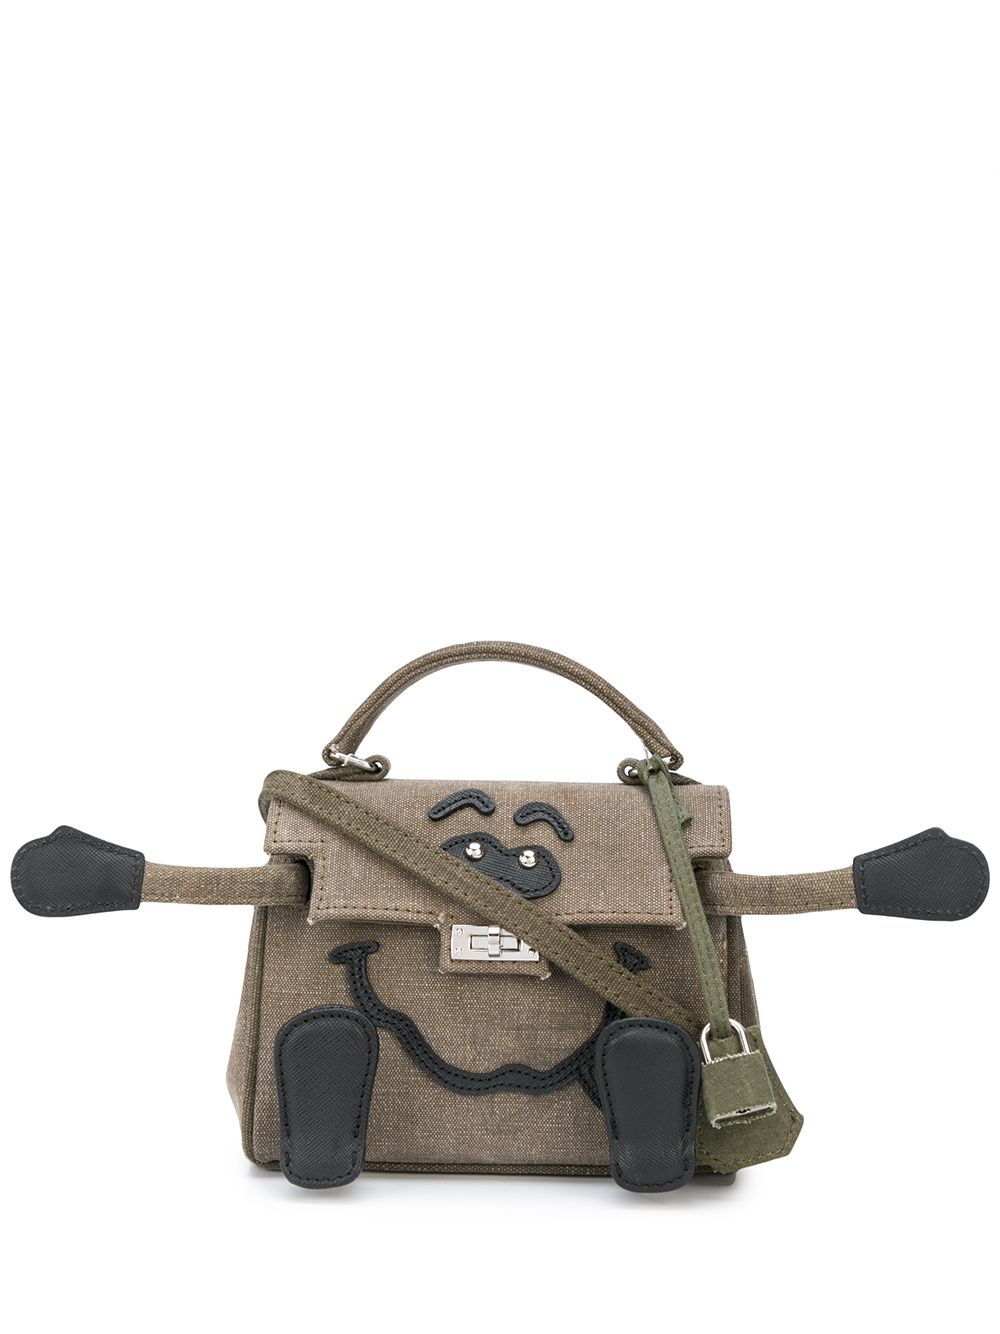 READYMADE VINTAGE ARMY TENT MINI MONSTER BAG